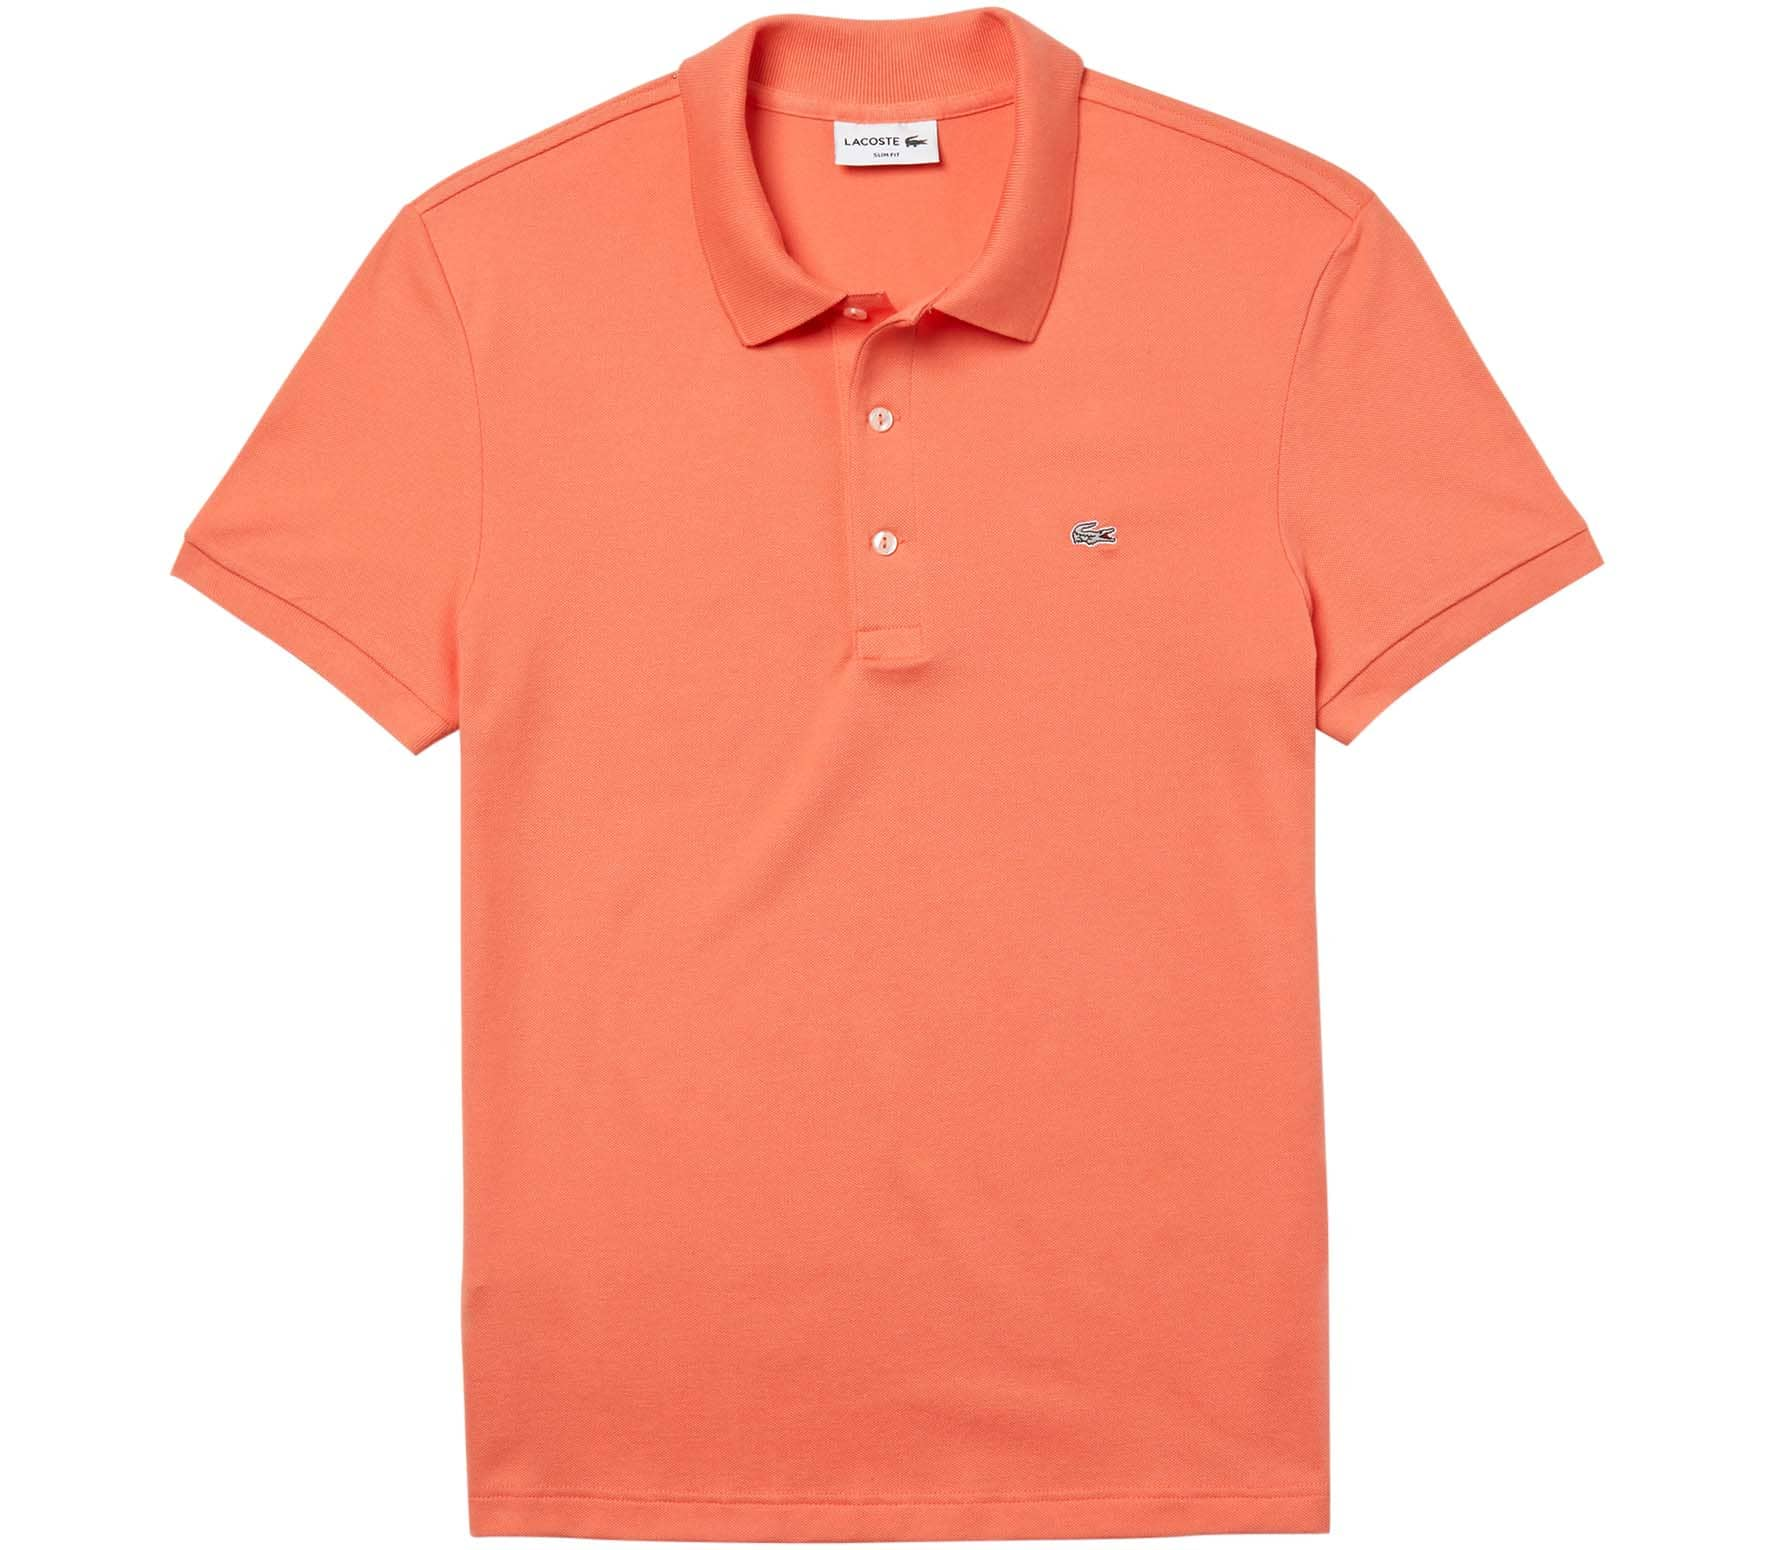 Lacoste Slim Fit Herren Poloshirt orange